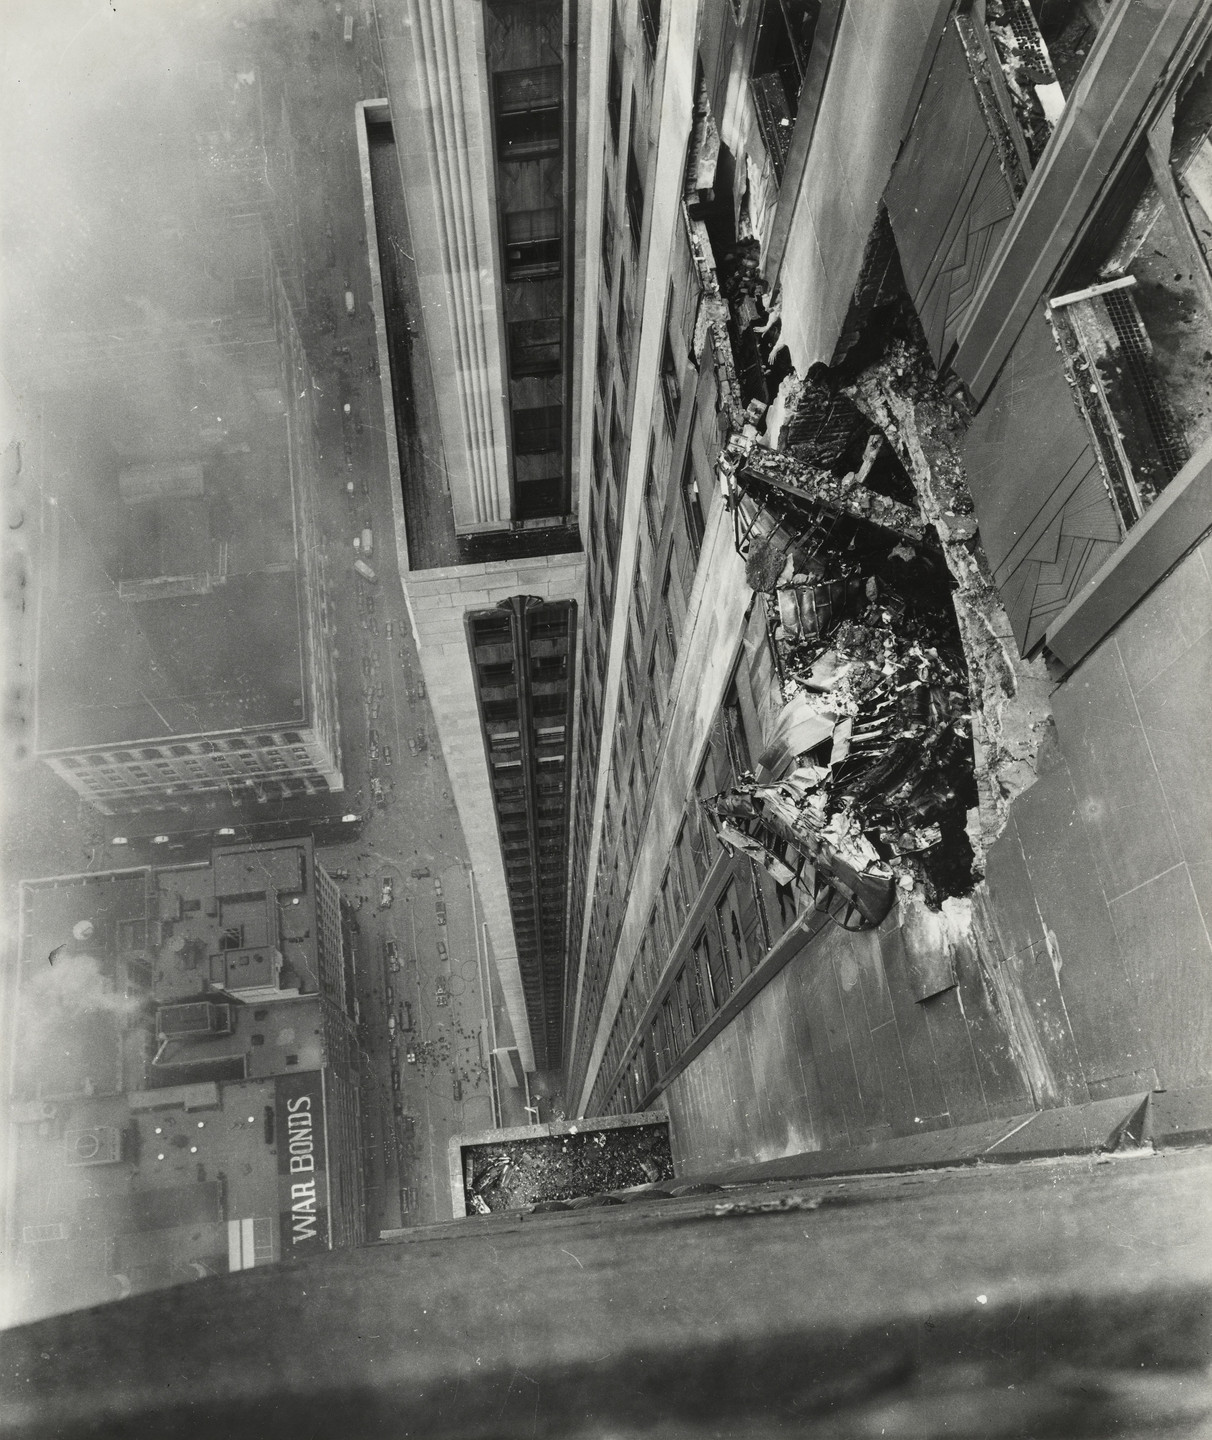 Ernie Sisto/The New York Times. Where Bomber Crashed into the Empire State Building. July 28, 1945